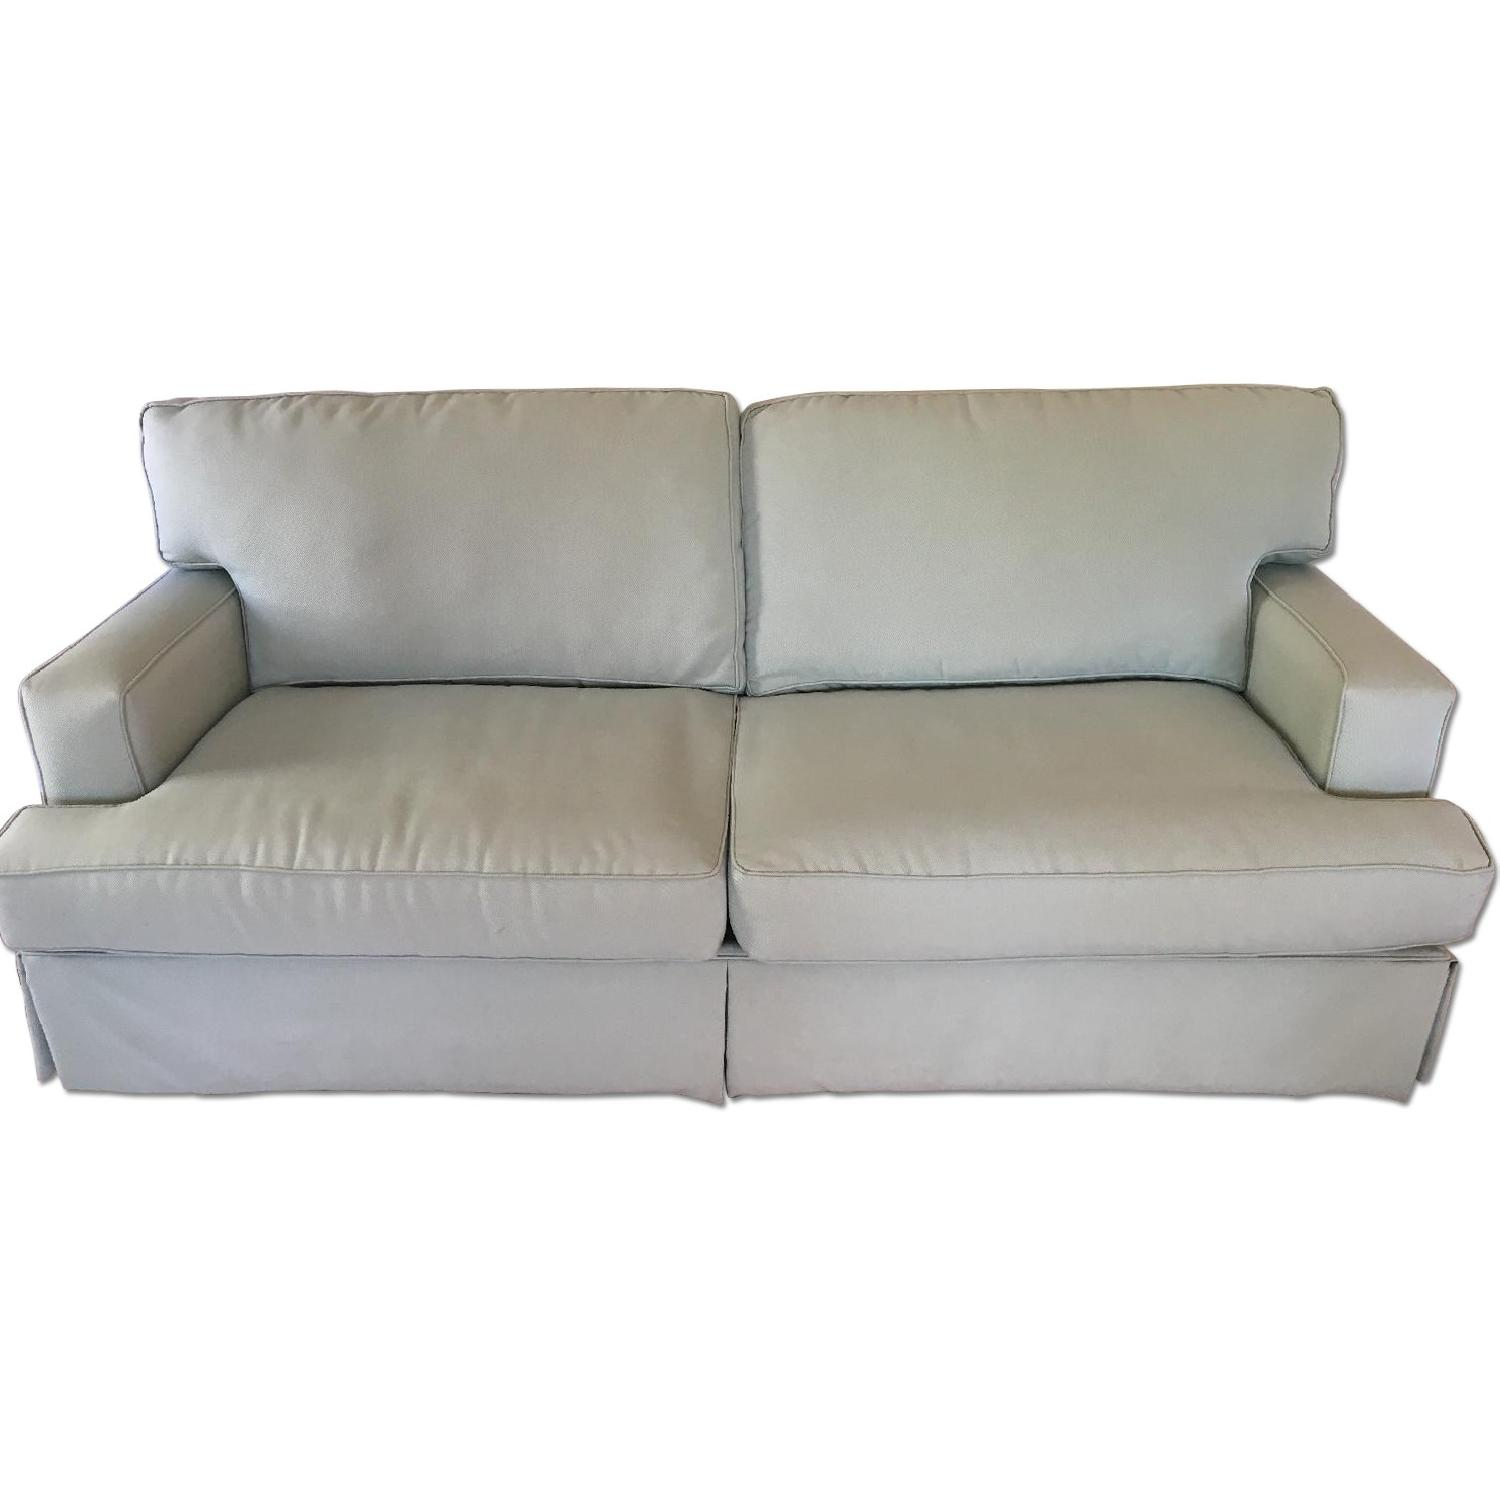 Raymour & Flanigan Sage Color Couch - image-0